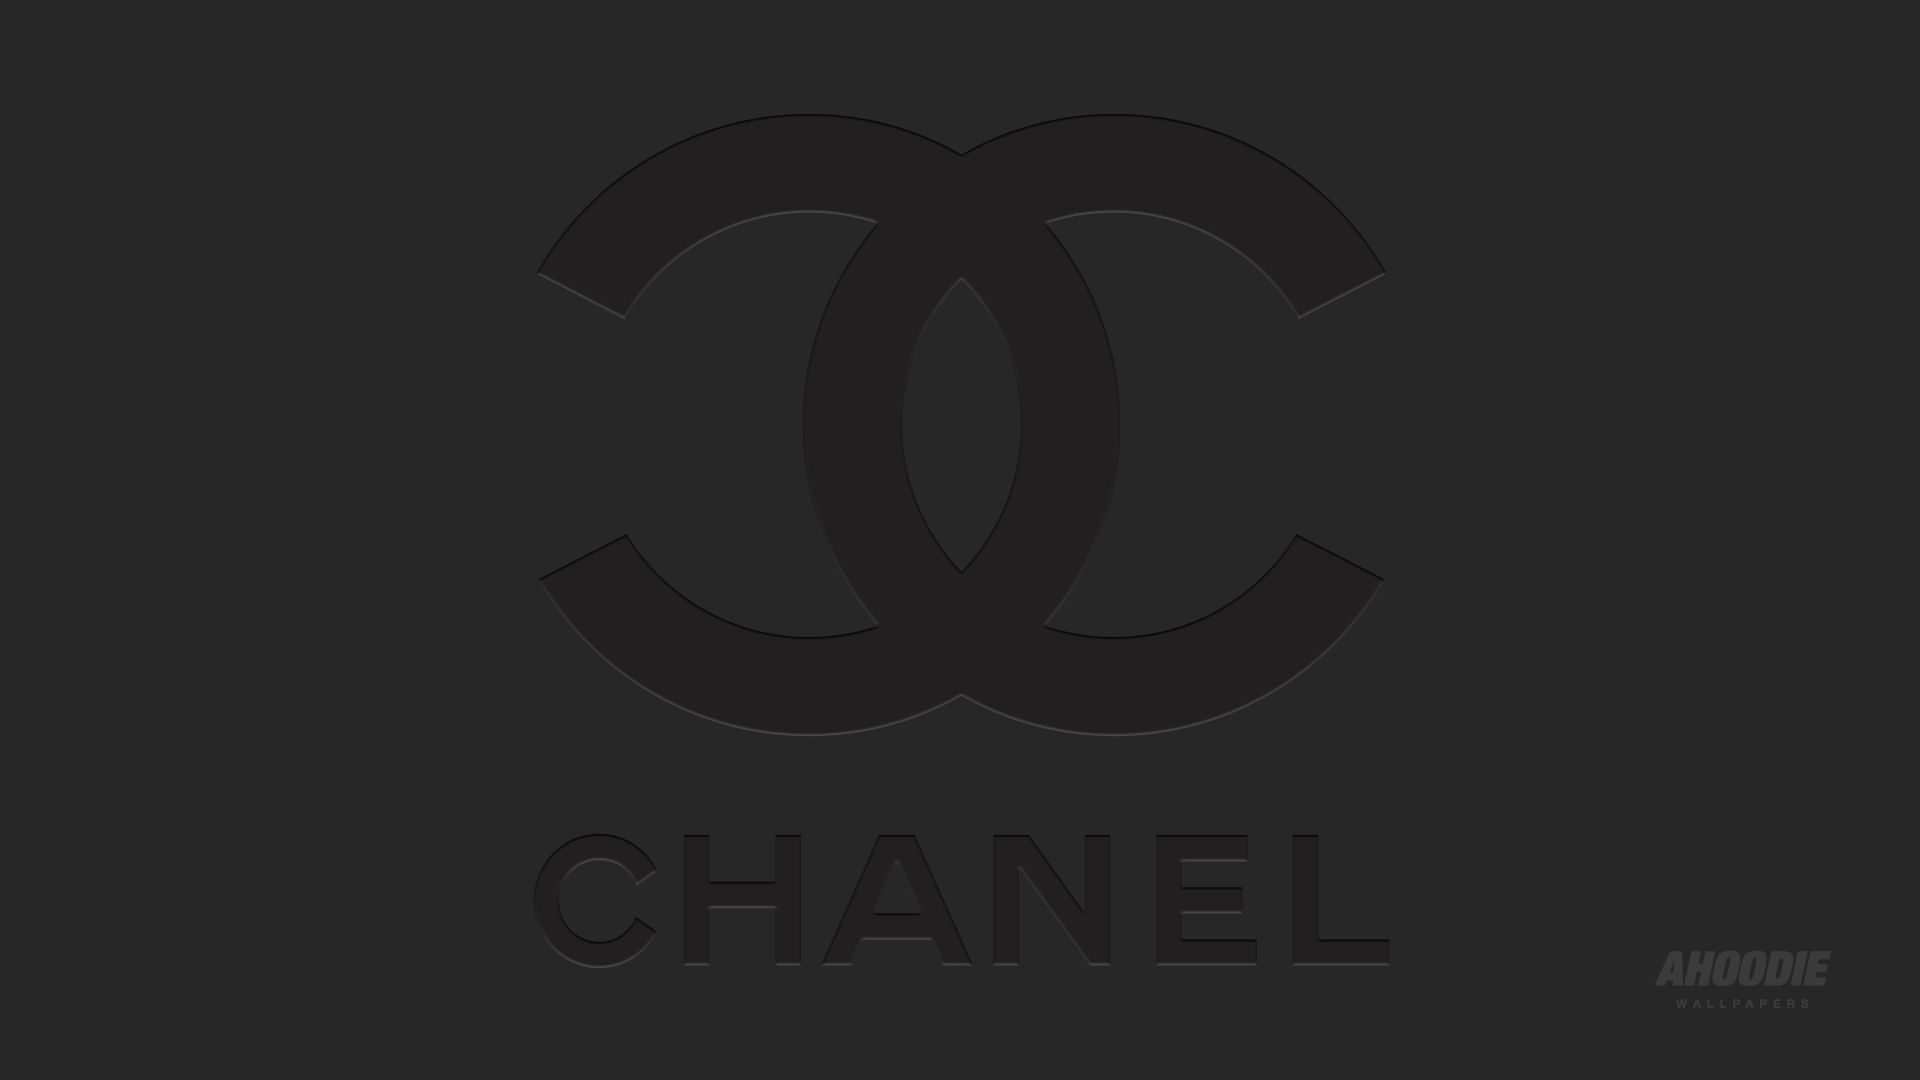 3d Wallpapers For Pc Full Screen Free Download Download Chanel Black Wallpaper Gallery